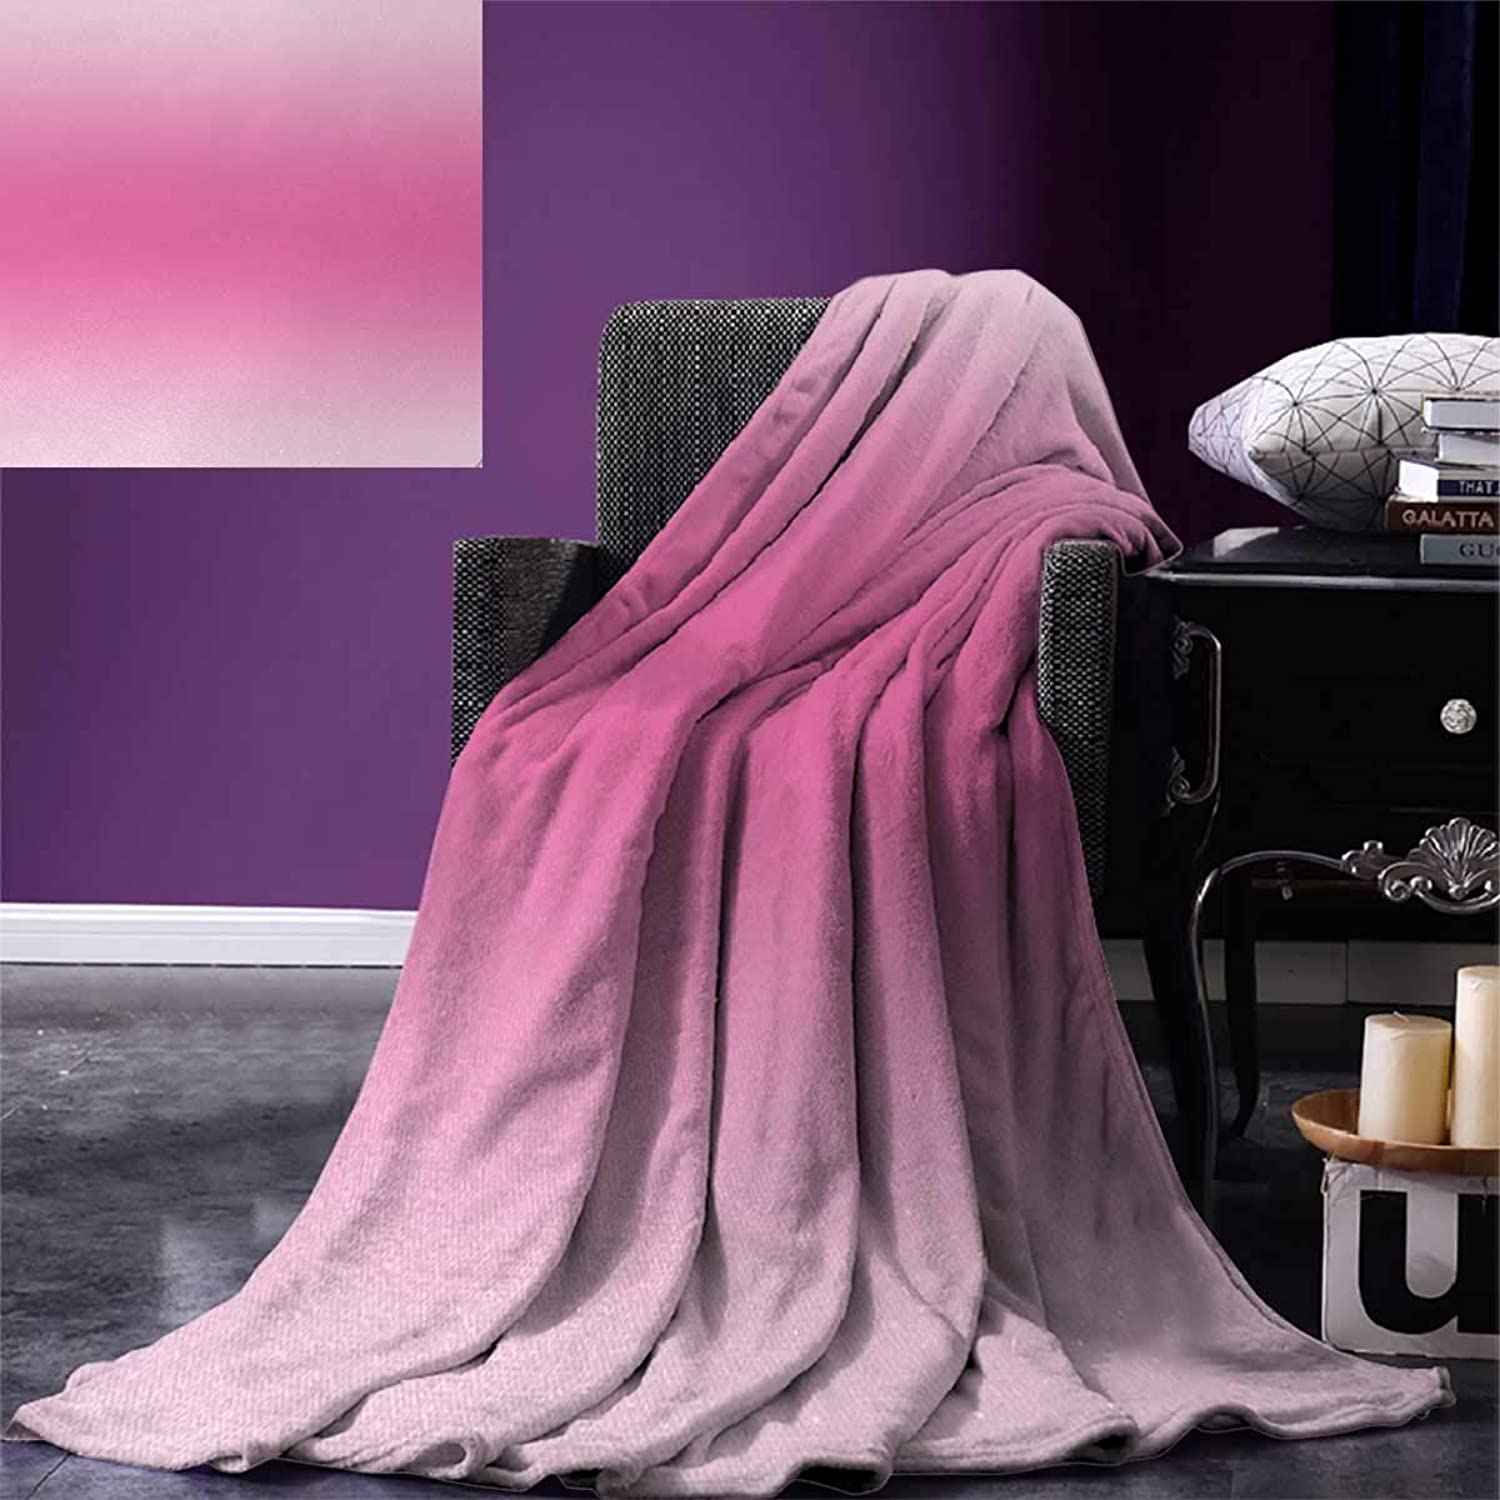 Anniutwo Ombre Travel Throw Blanket Medieval Fairytale Style Cotton Candy Inspired Girly Design Digital Modern Artwork Print Velvet Plush Throw Blanket 60 x50  Pink